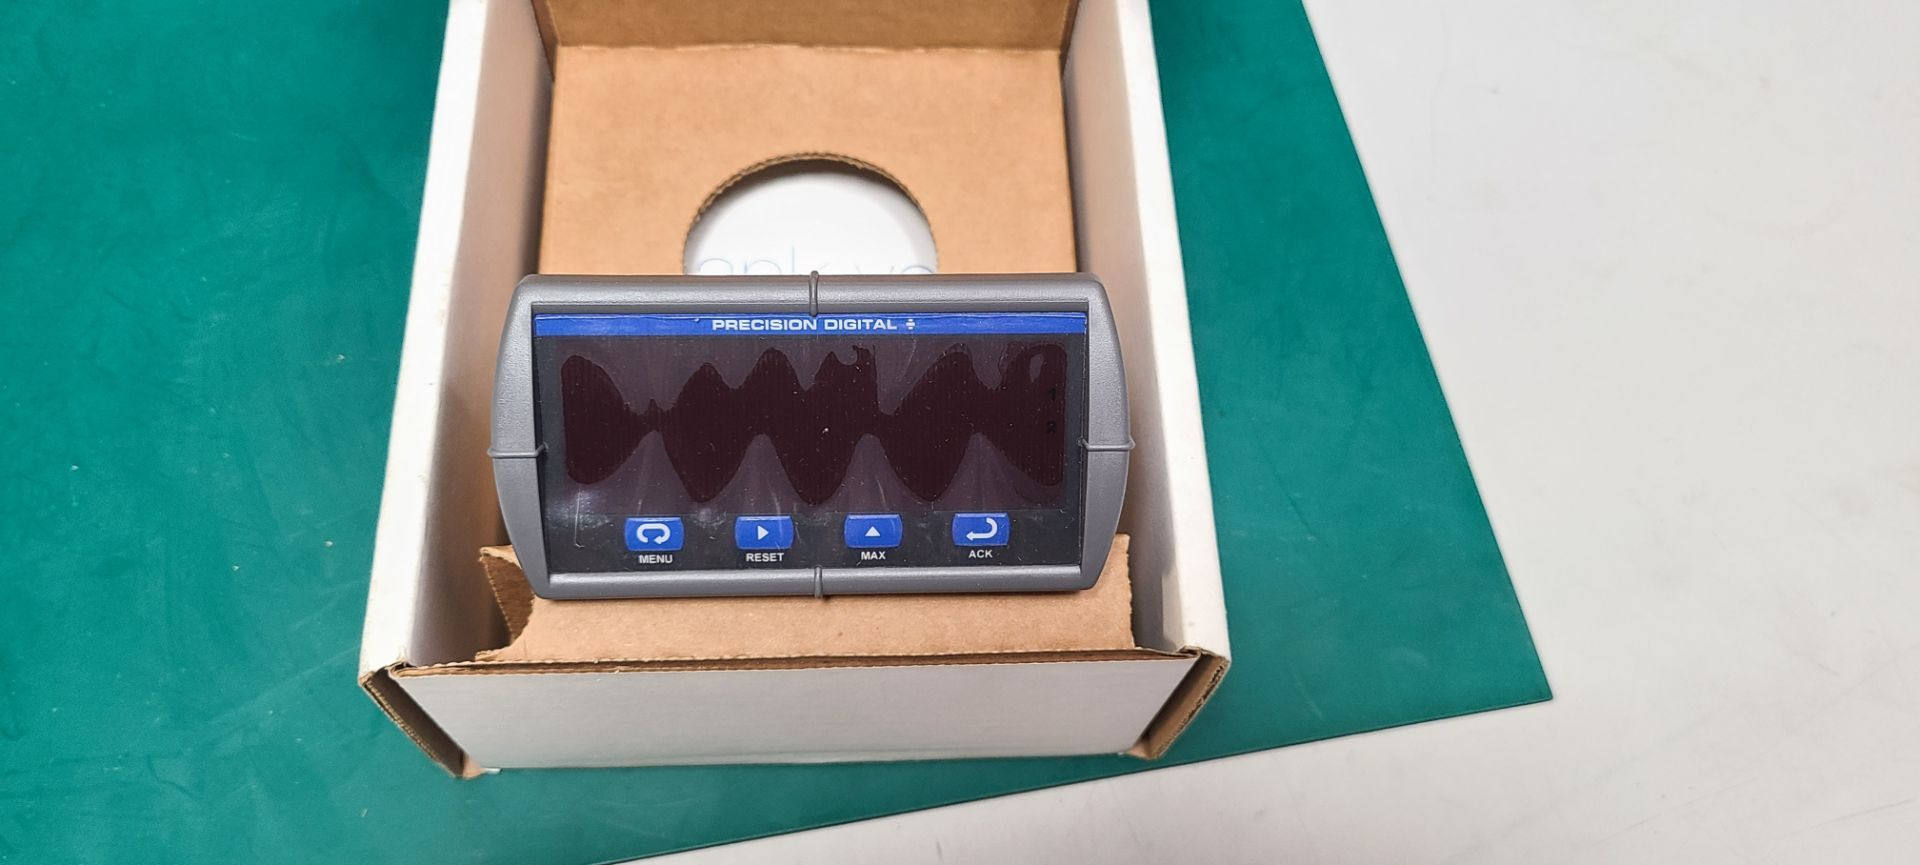 NEW PRECISION DIGITAL TRIDENT METER - Image 3 of 3